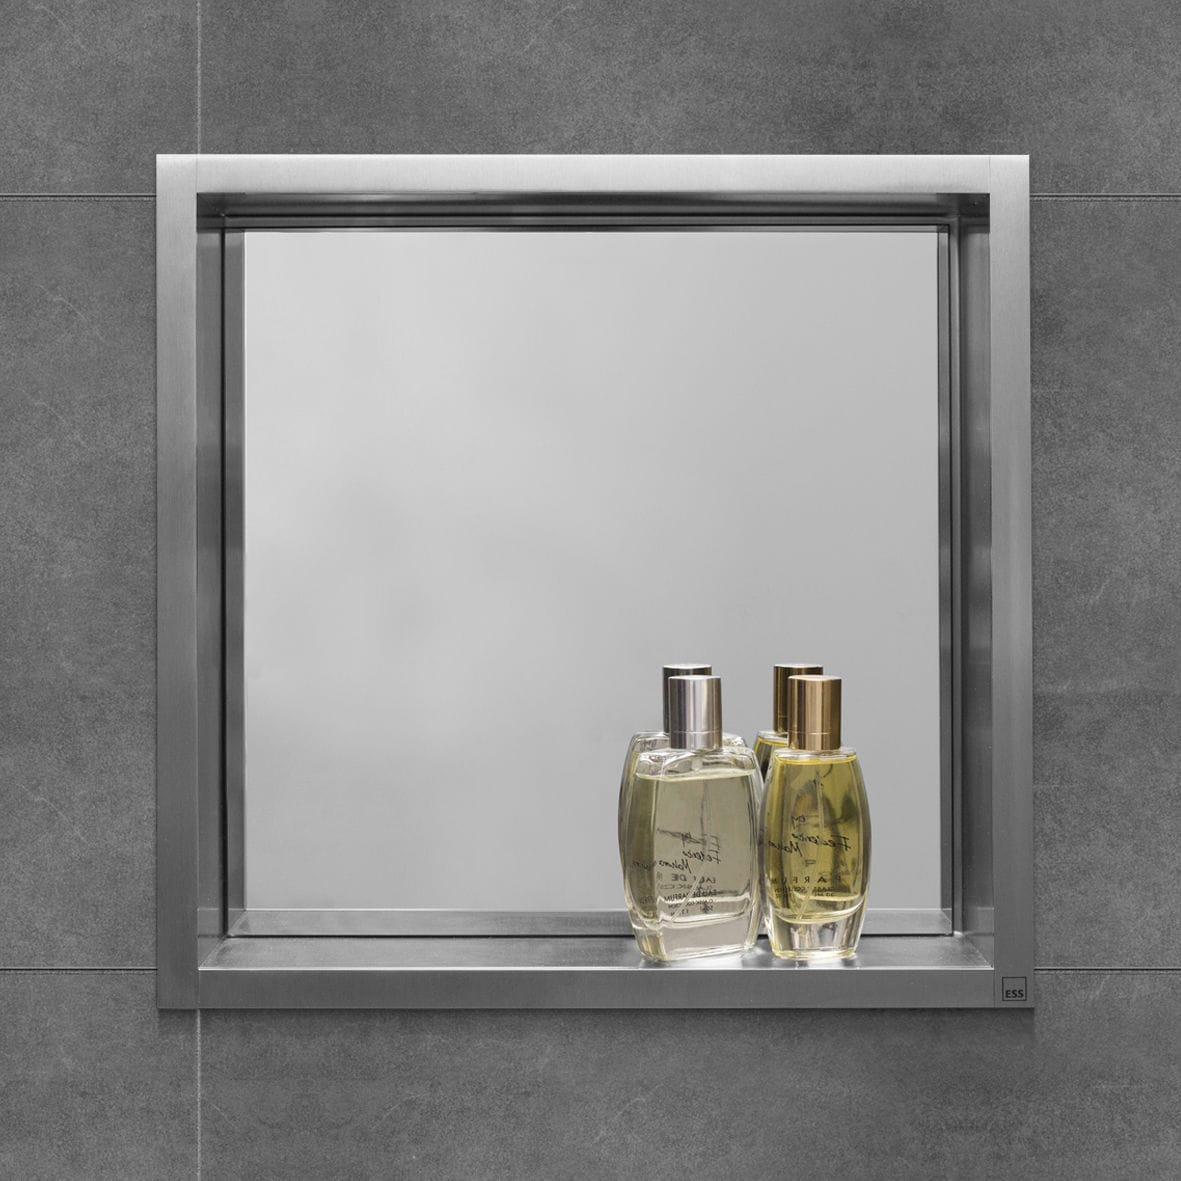 Mirrored Bathroom Wall Cabinet Ess Container Box Niche With Mirror Easy Sanitary Solutions